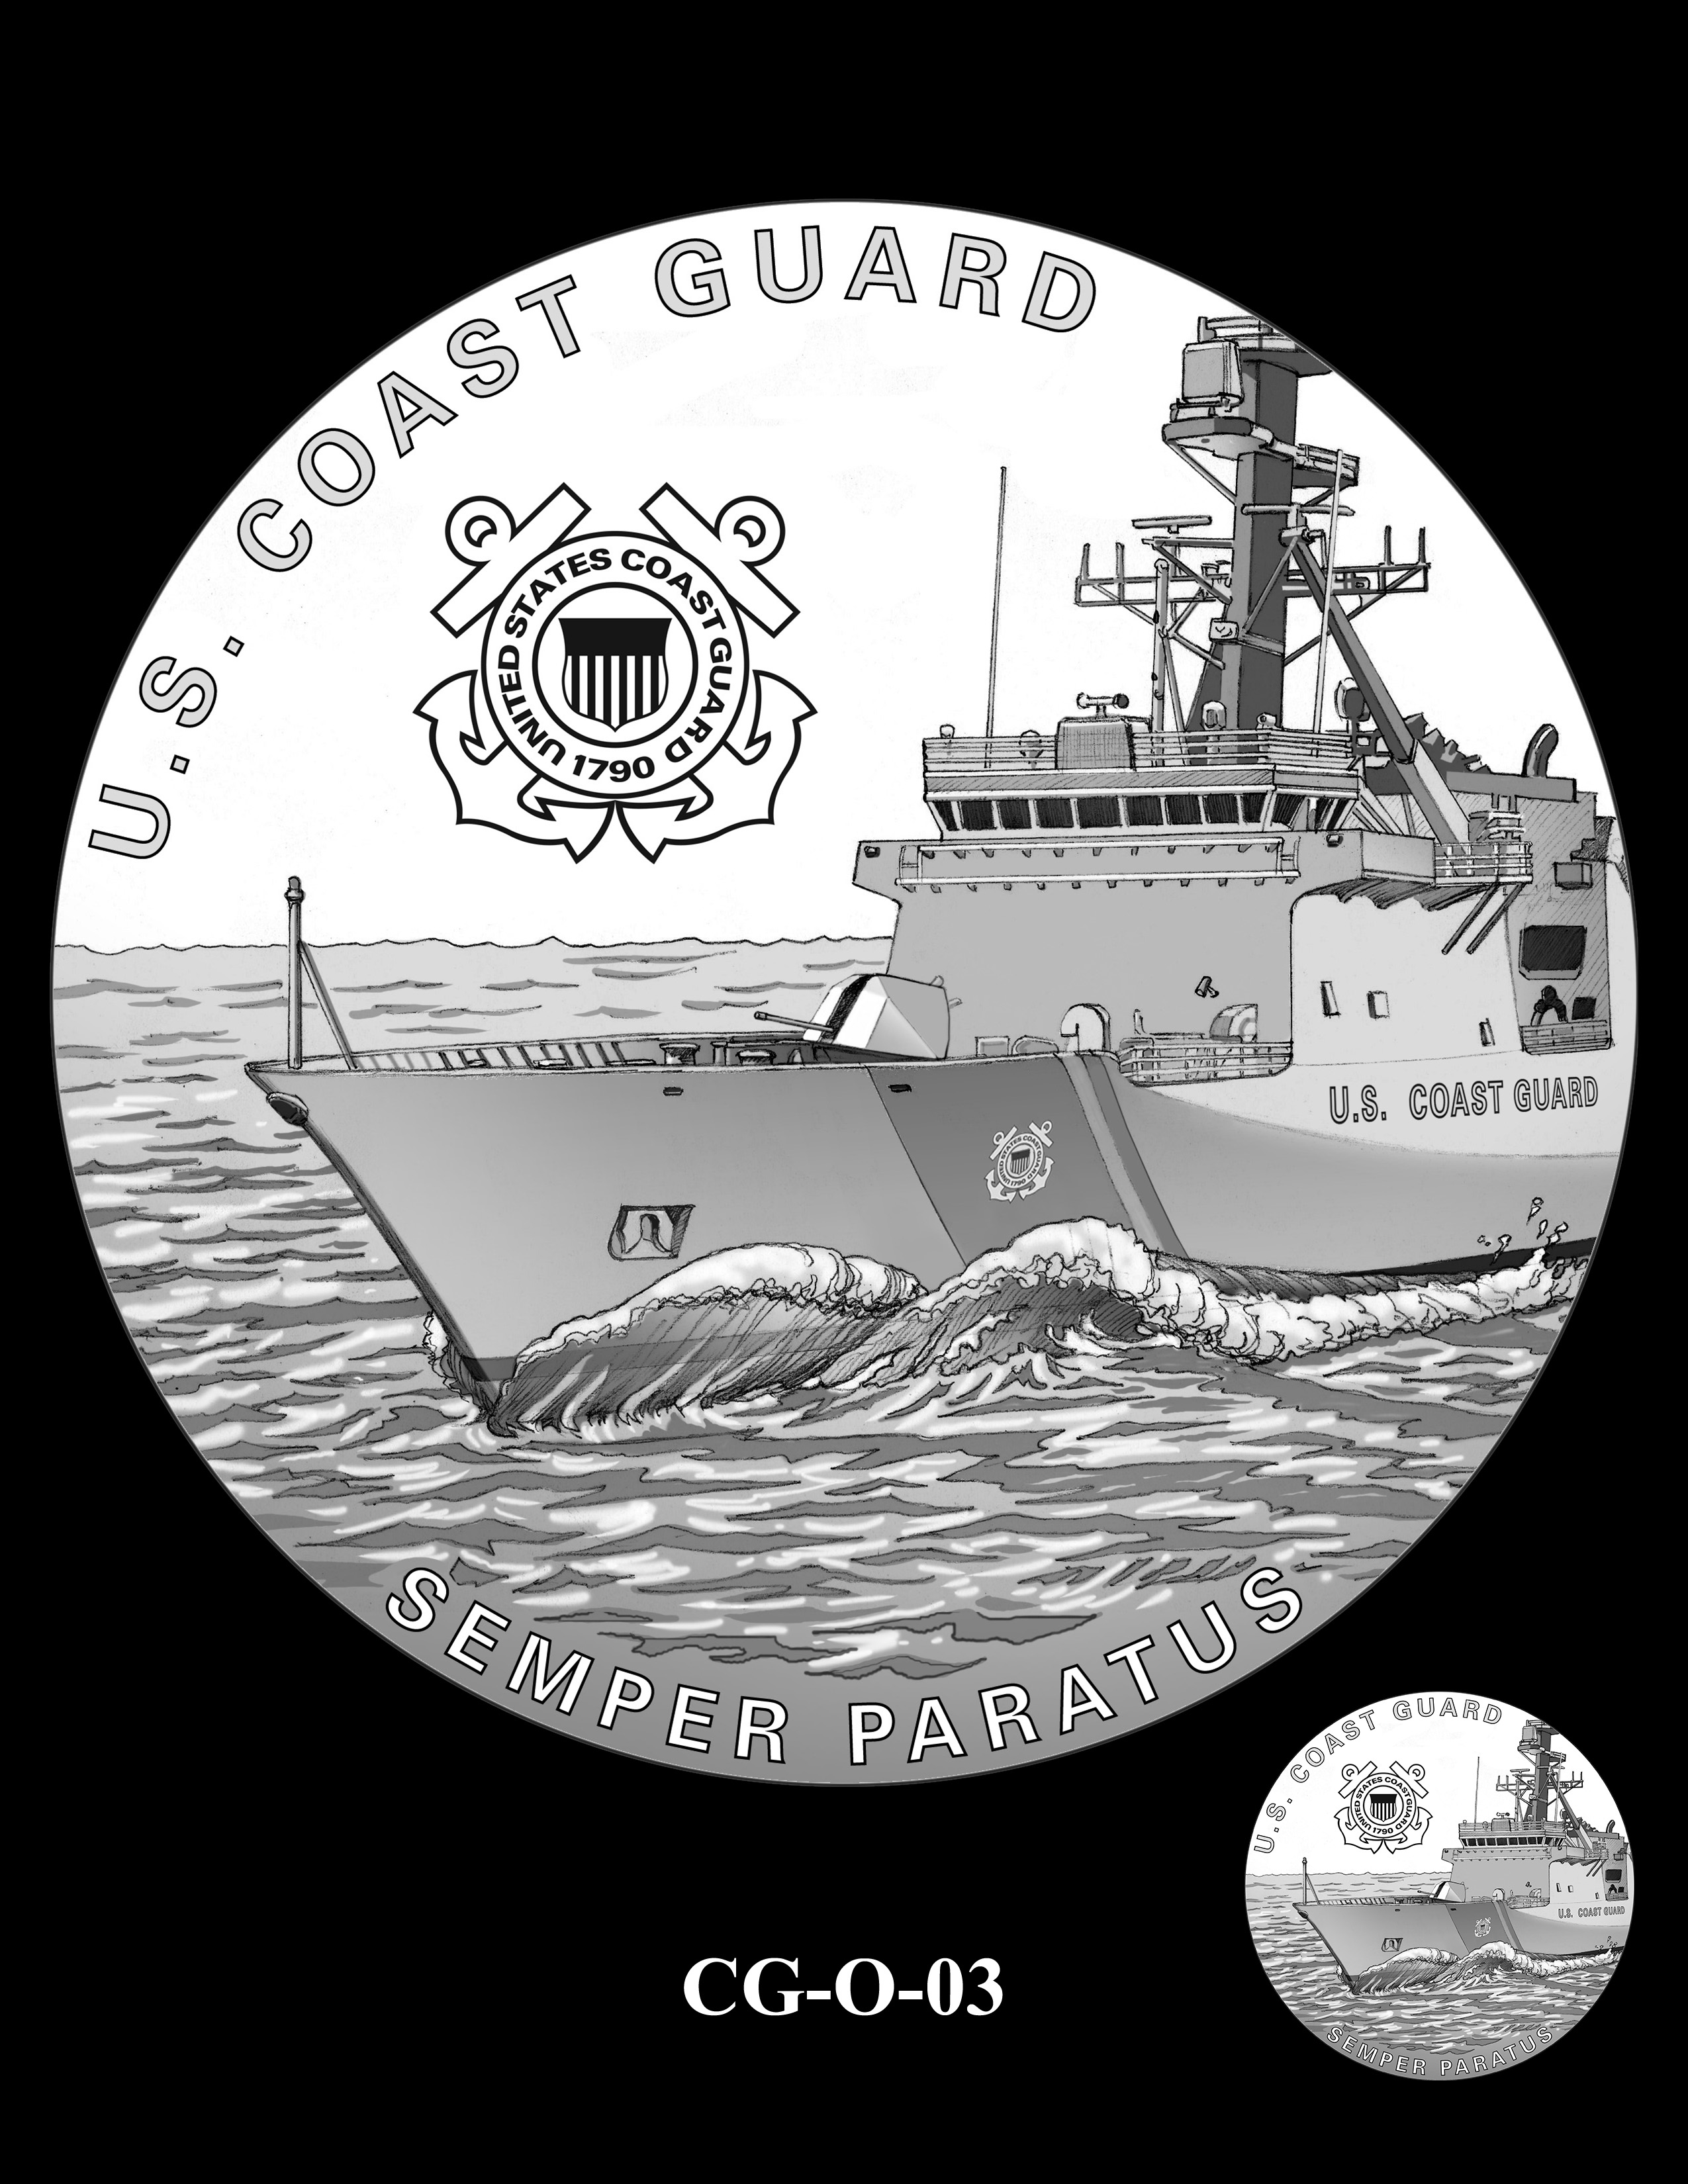 CG-O-03 -- Armed Forces Medal - Coast Guard